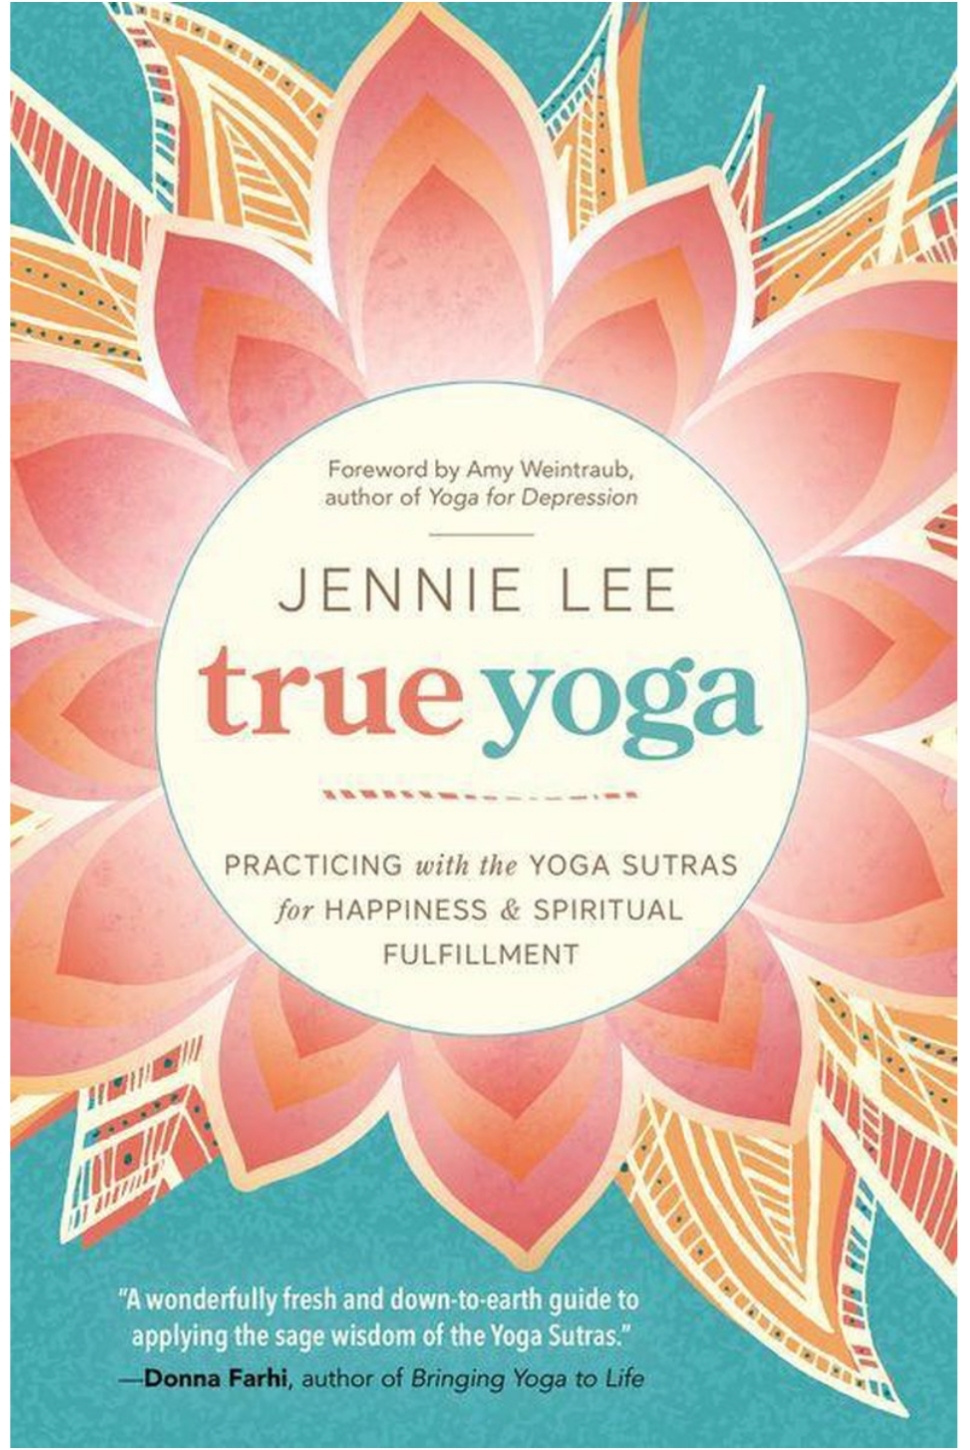 True yoga, Jennie Lee